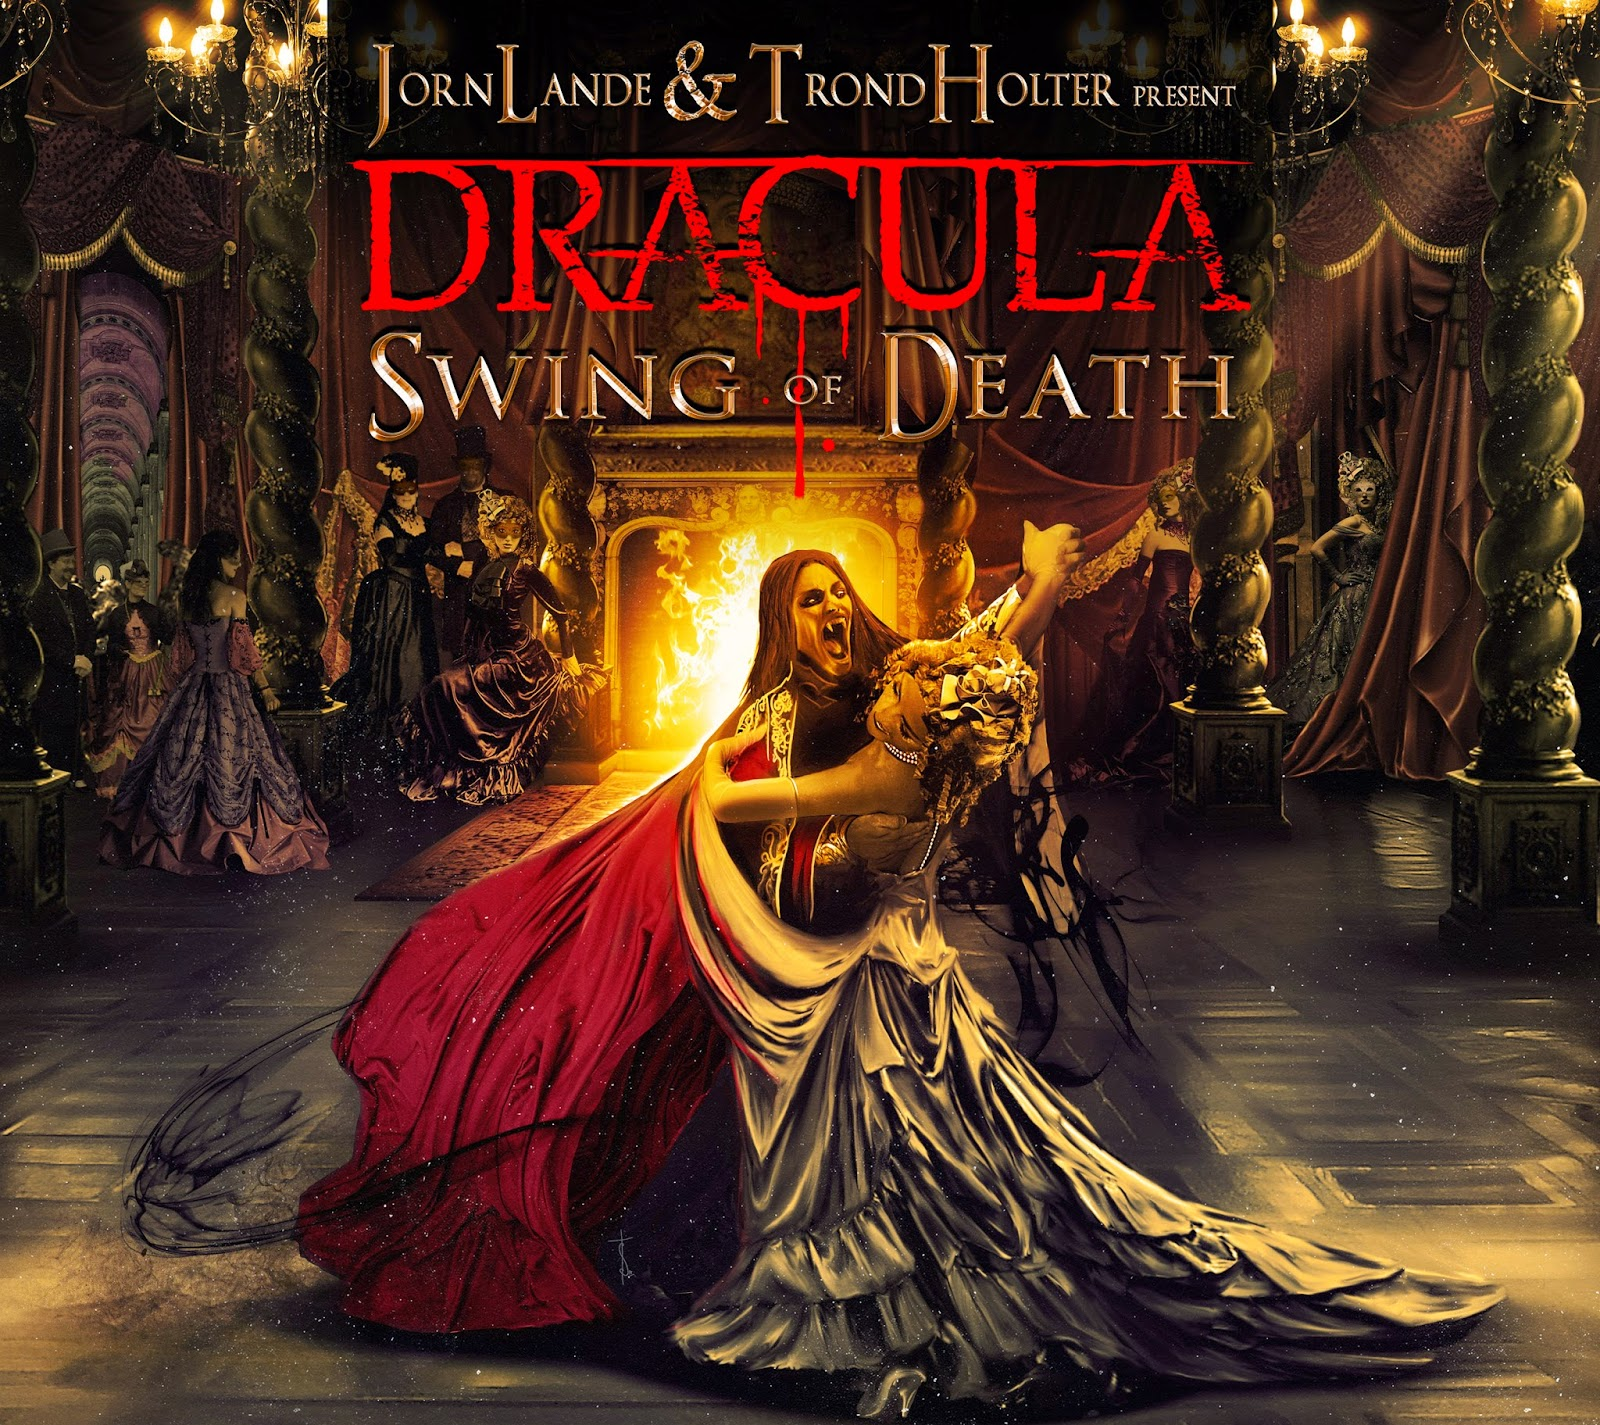 http://rock-and-metal-4-you.blogspot.de/2015/01/cd-review-dracula-swing-of-death.html